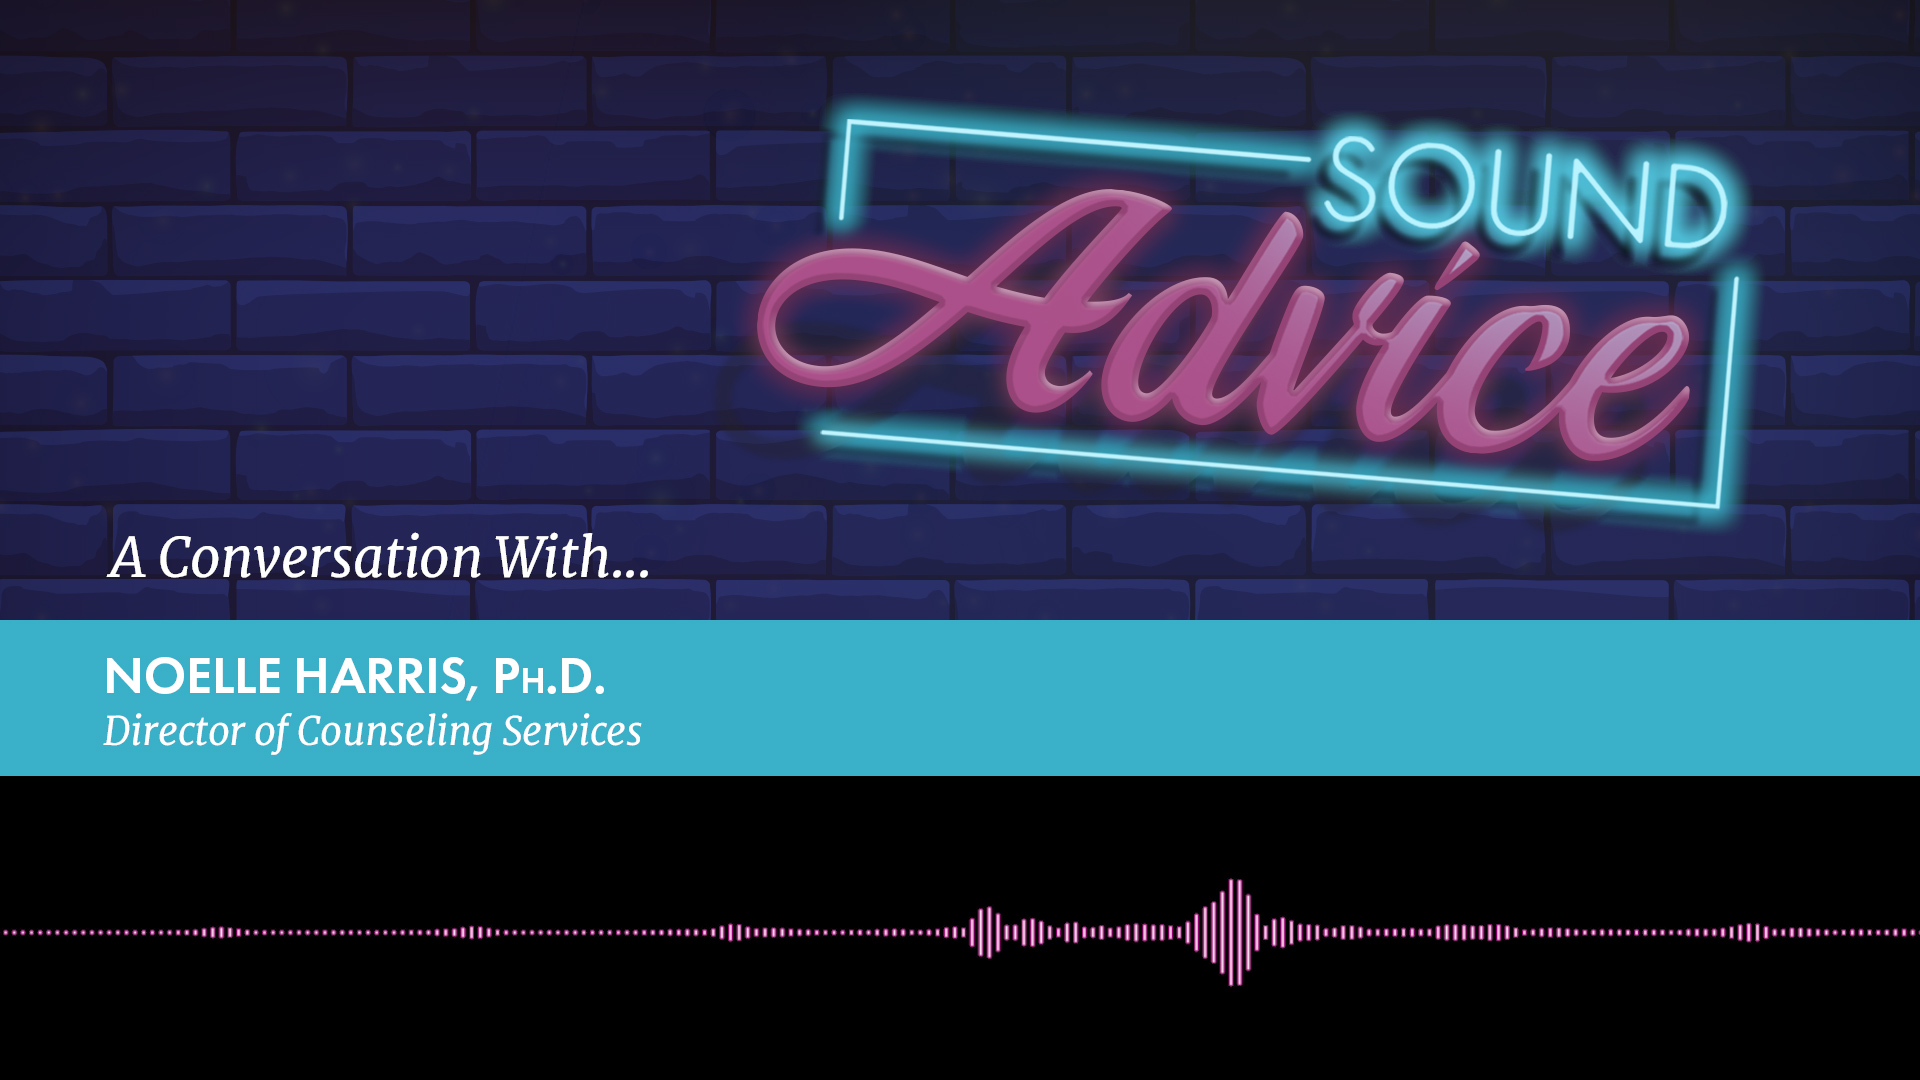 In this Sound Advice podcast, Counseling Services Director Noelle Harris, Ph.D., offers advice for coping with the COVID-19 pandemic.